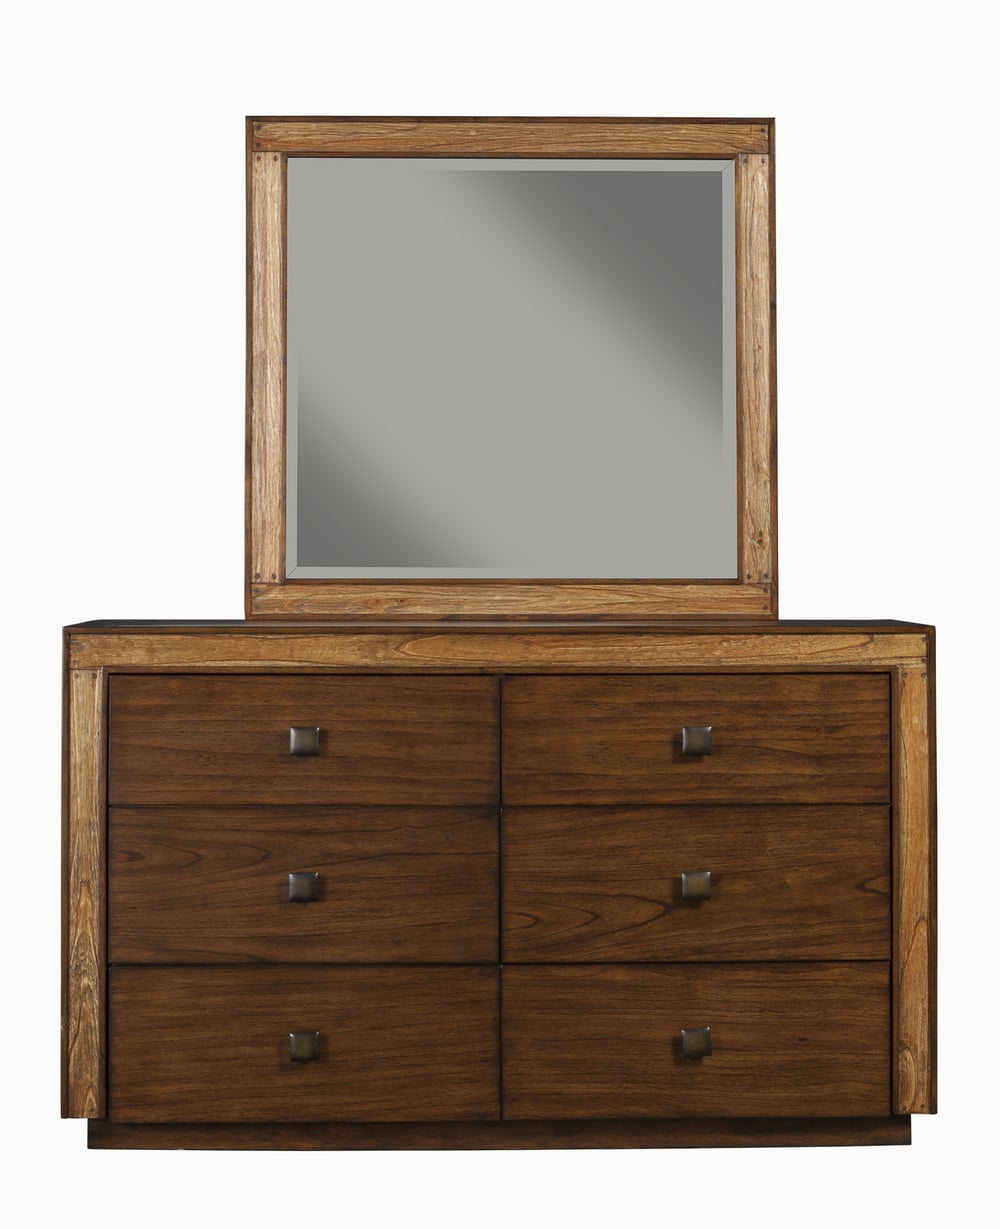 JIMBARAN BAY DRESSER AND MIRROR